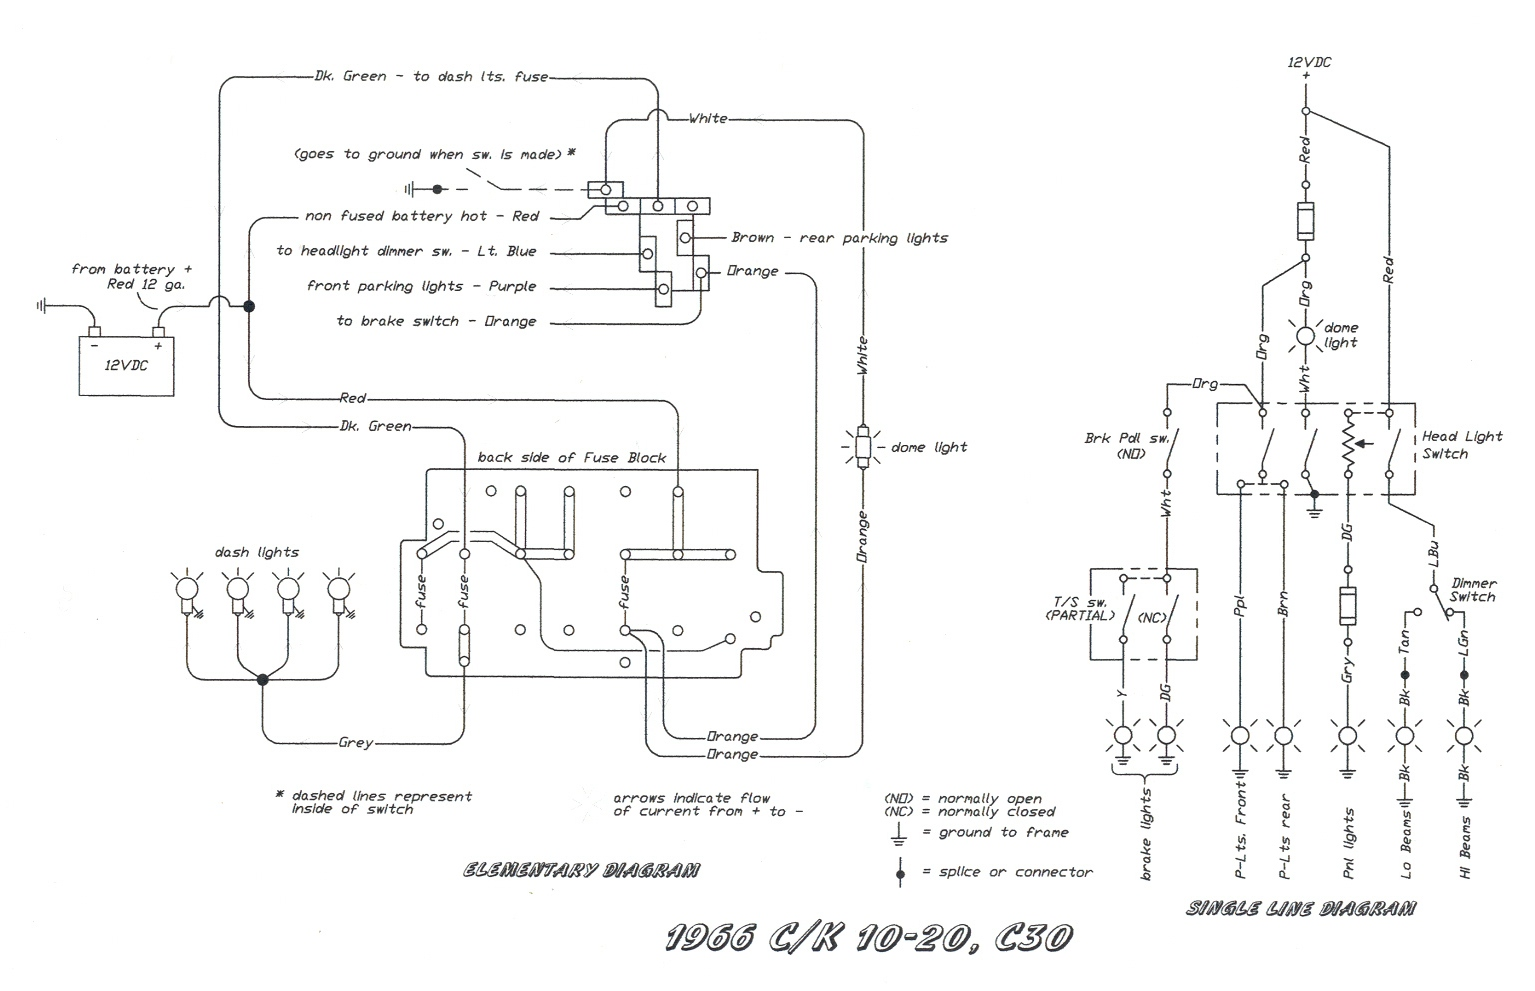 1949 chevy truck headlight switch wiring wiring diagram featured 1950 chevy truck headlight switch wiring [ 1535 x 991 Pixel ]